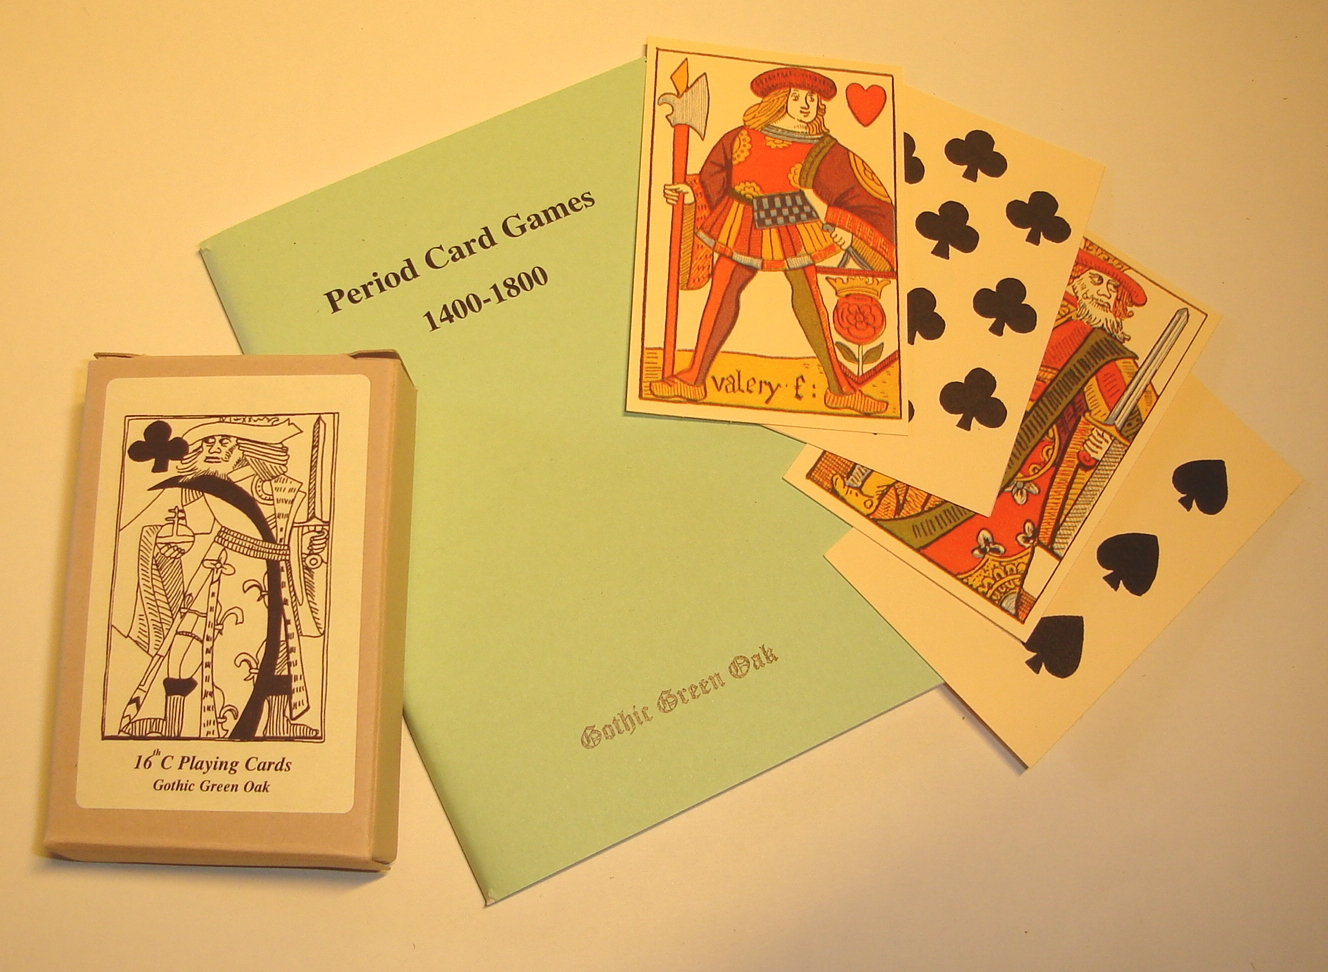 Sixteenth century French-suited playing cards, plus historic card games rule book